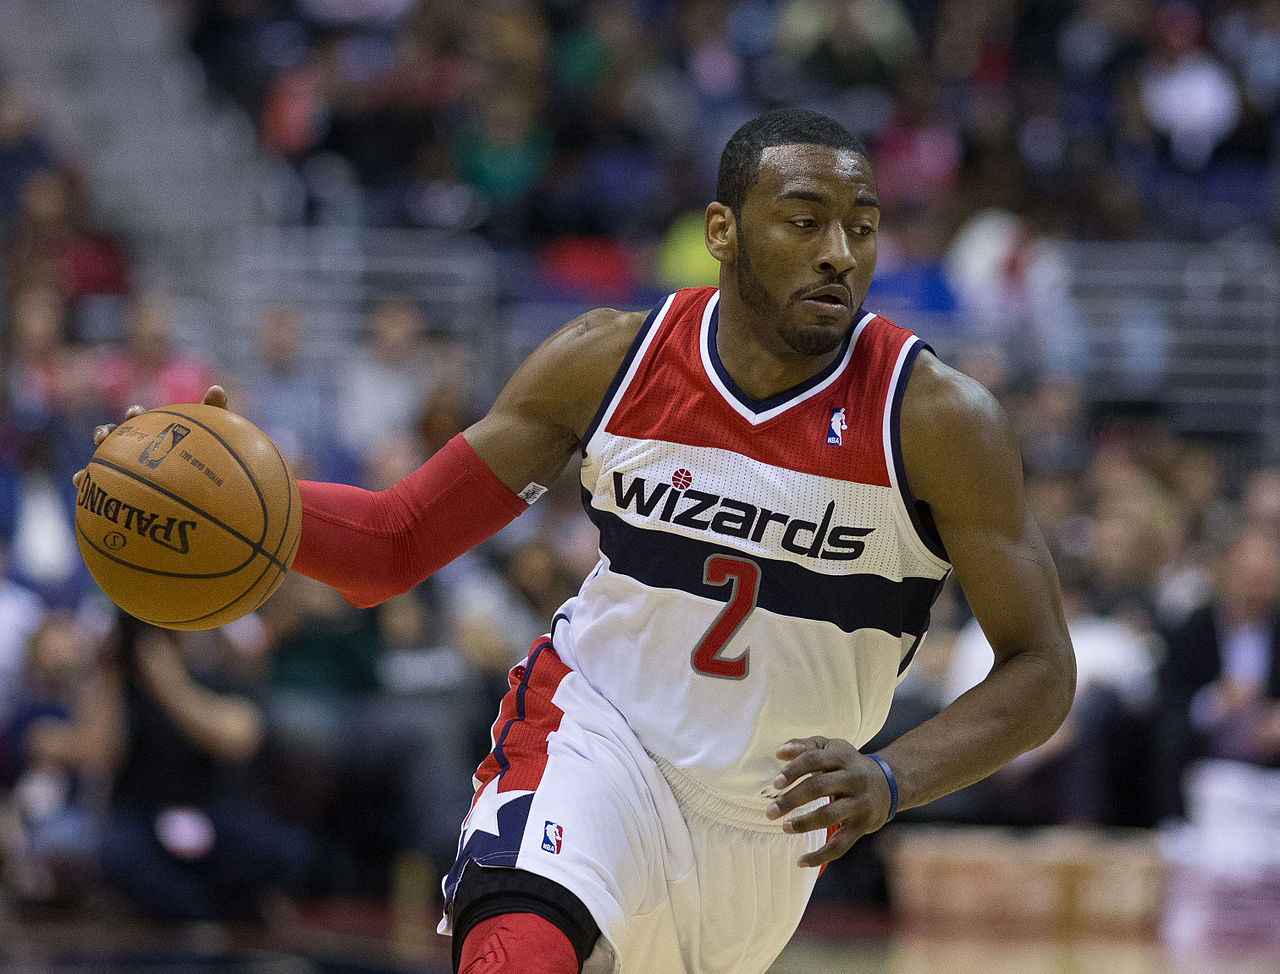 Have the Wizards peaked?